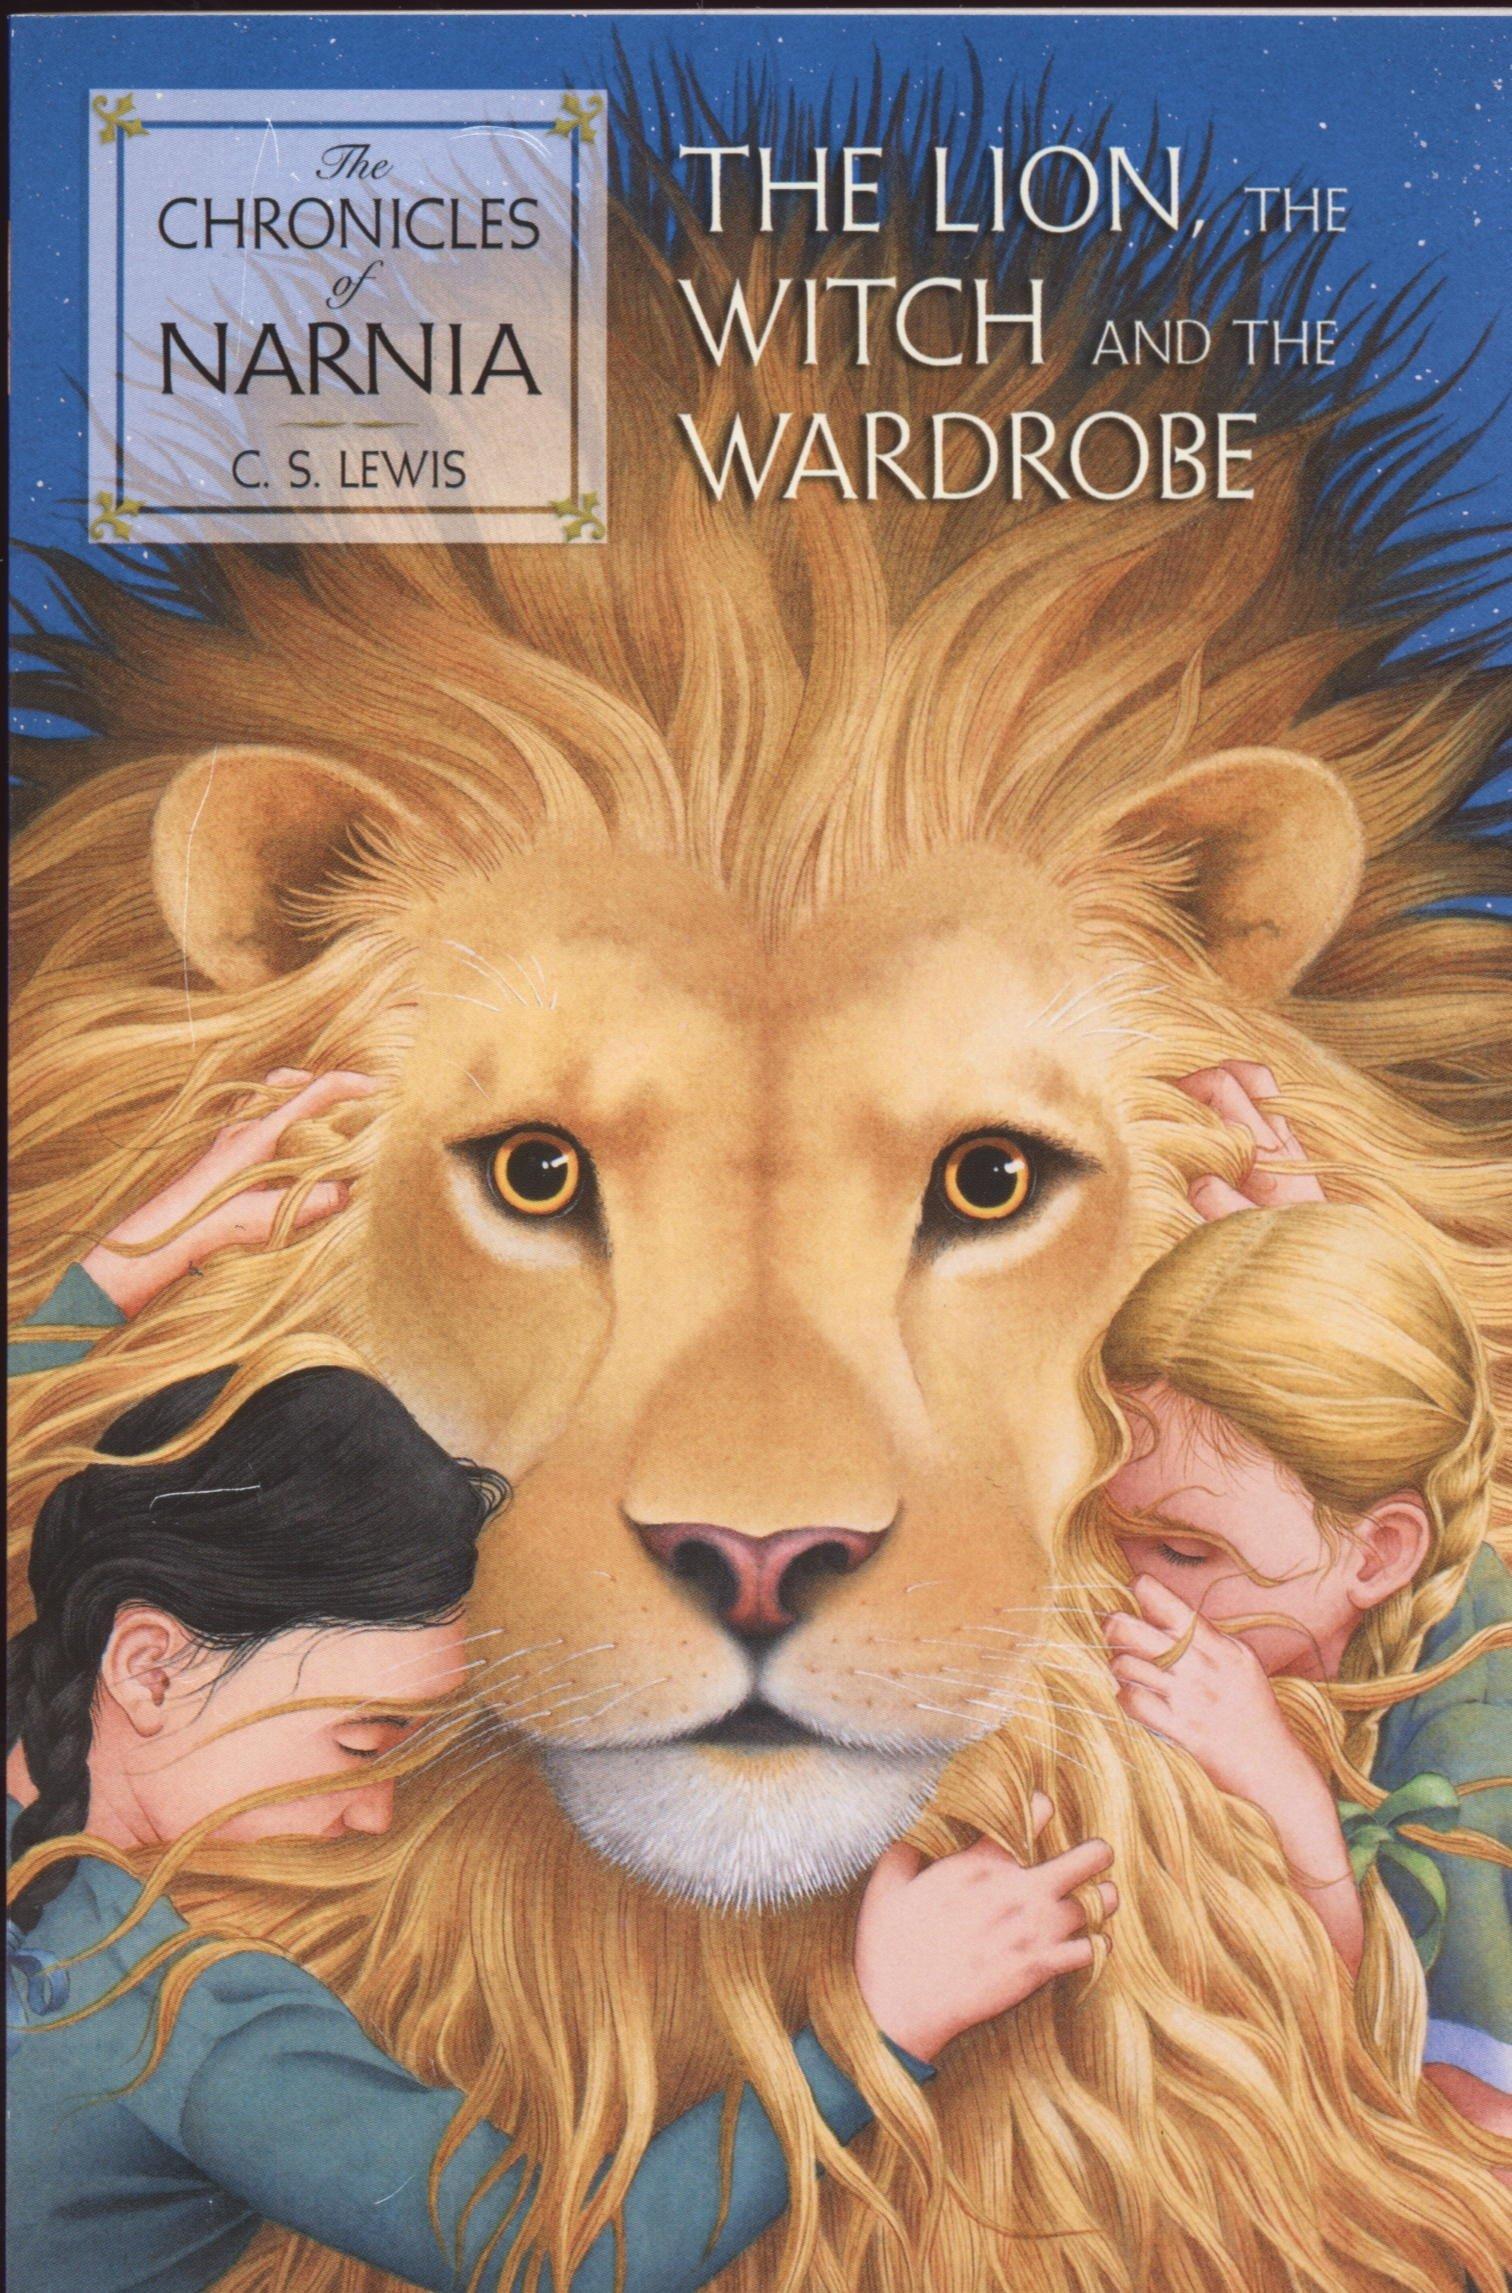 The Lion, the Witch and the Wardrobe (The Chronicles of Narnia), C. S. Lewis